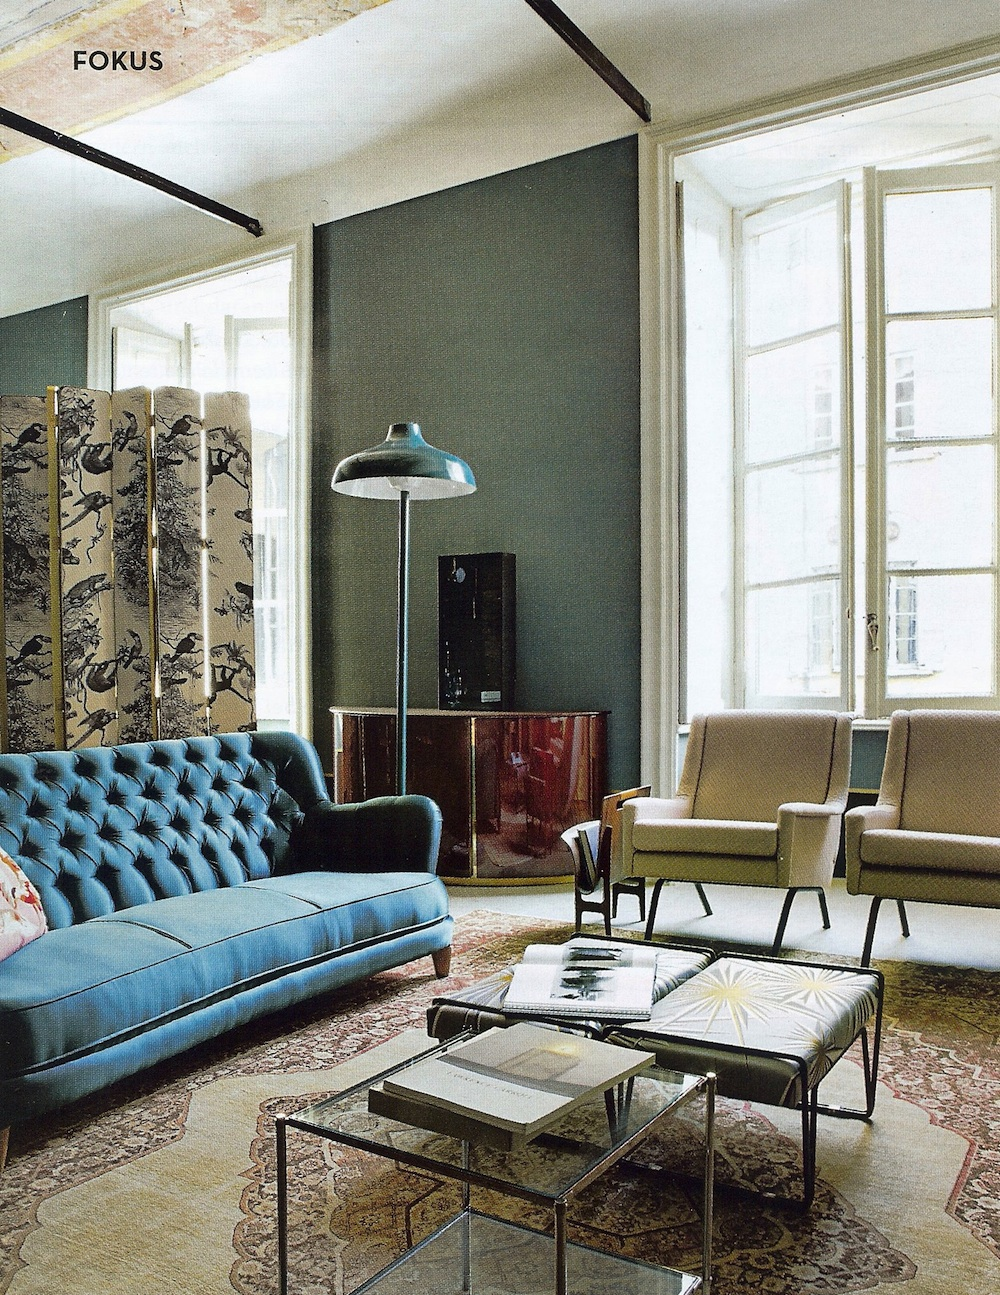 Modern Sofa Inspirational Interiors: Dimore Studio, Milan And Paris